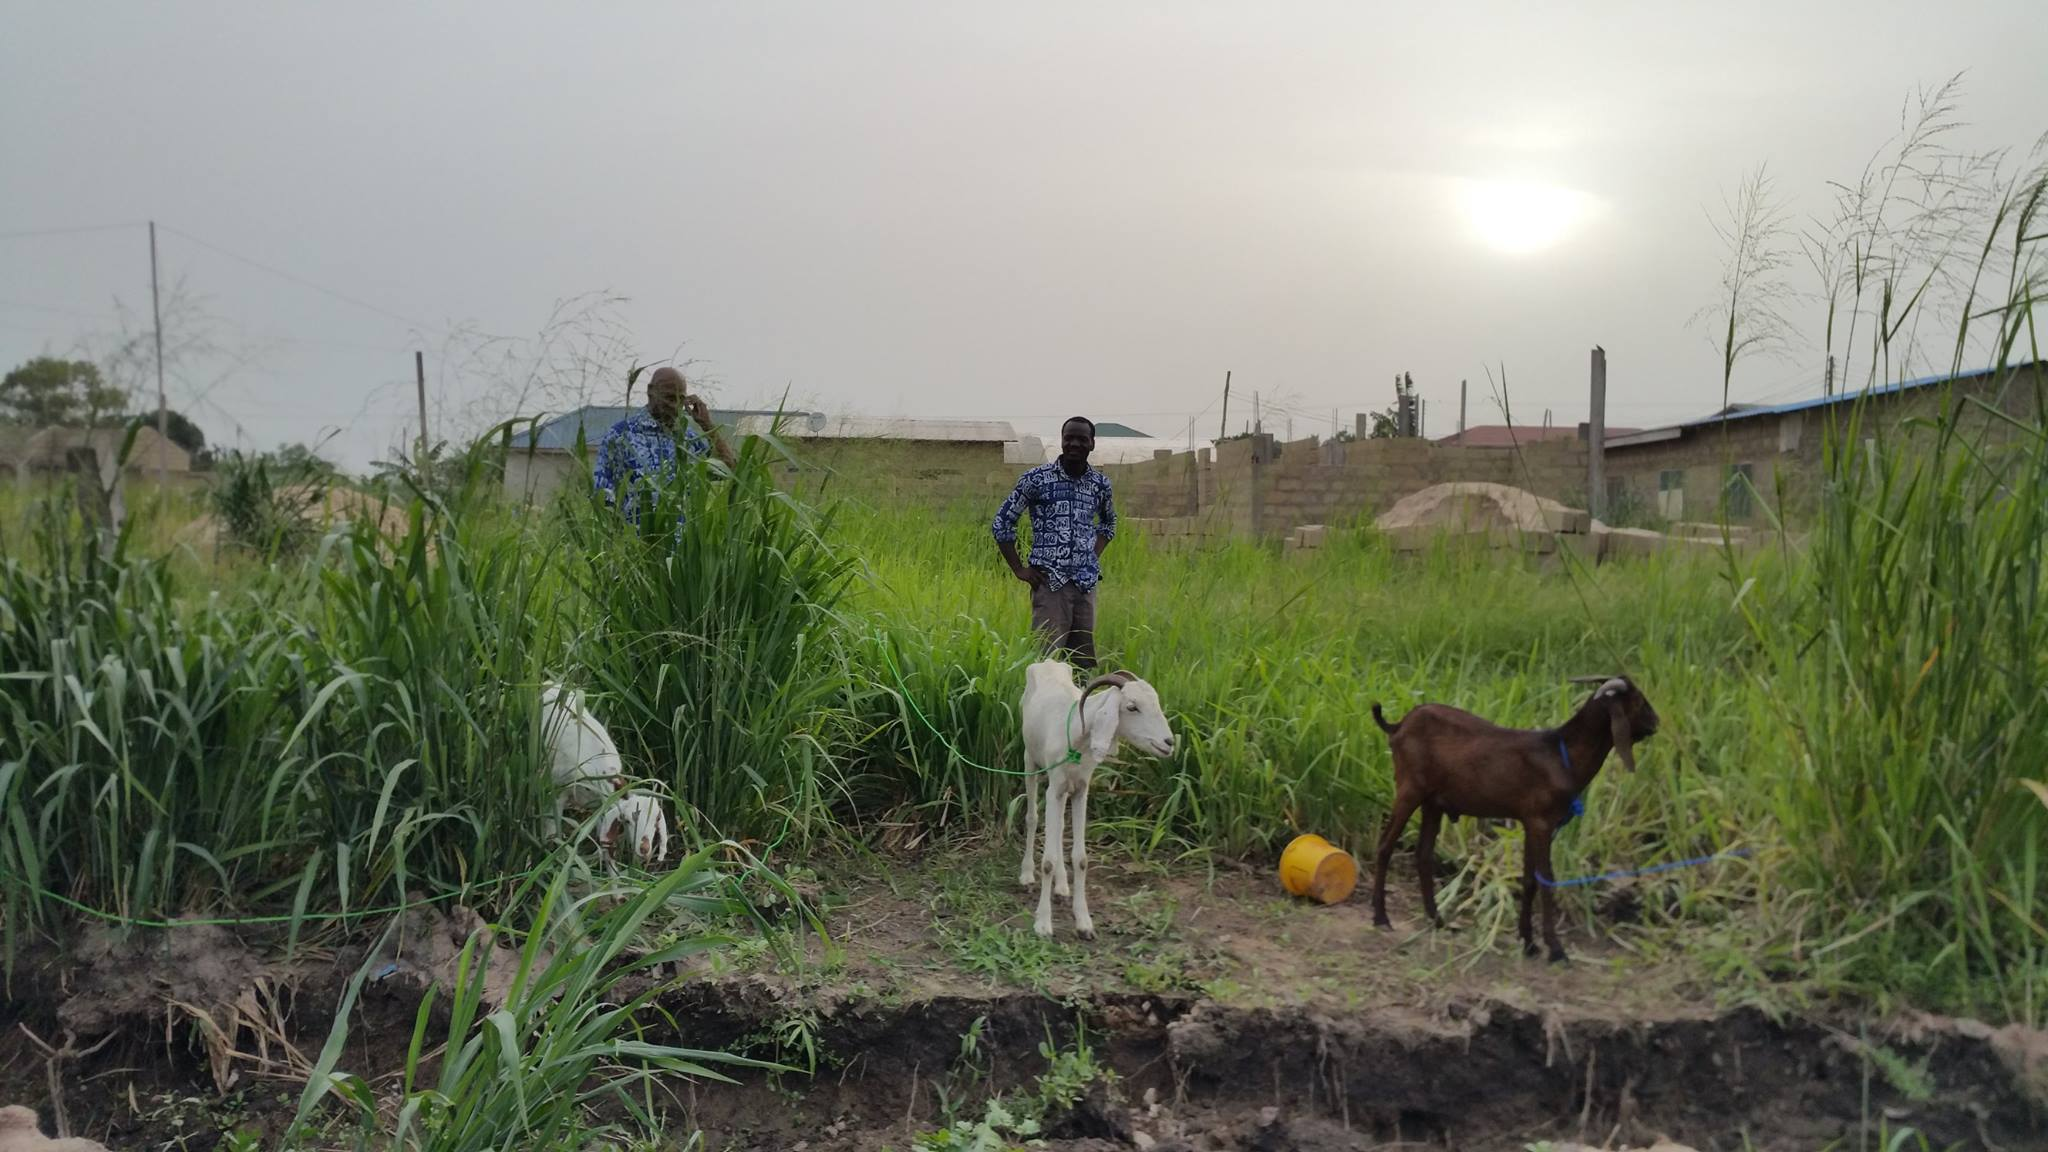 3-Agriculture with goats.jpg